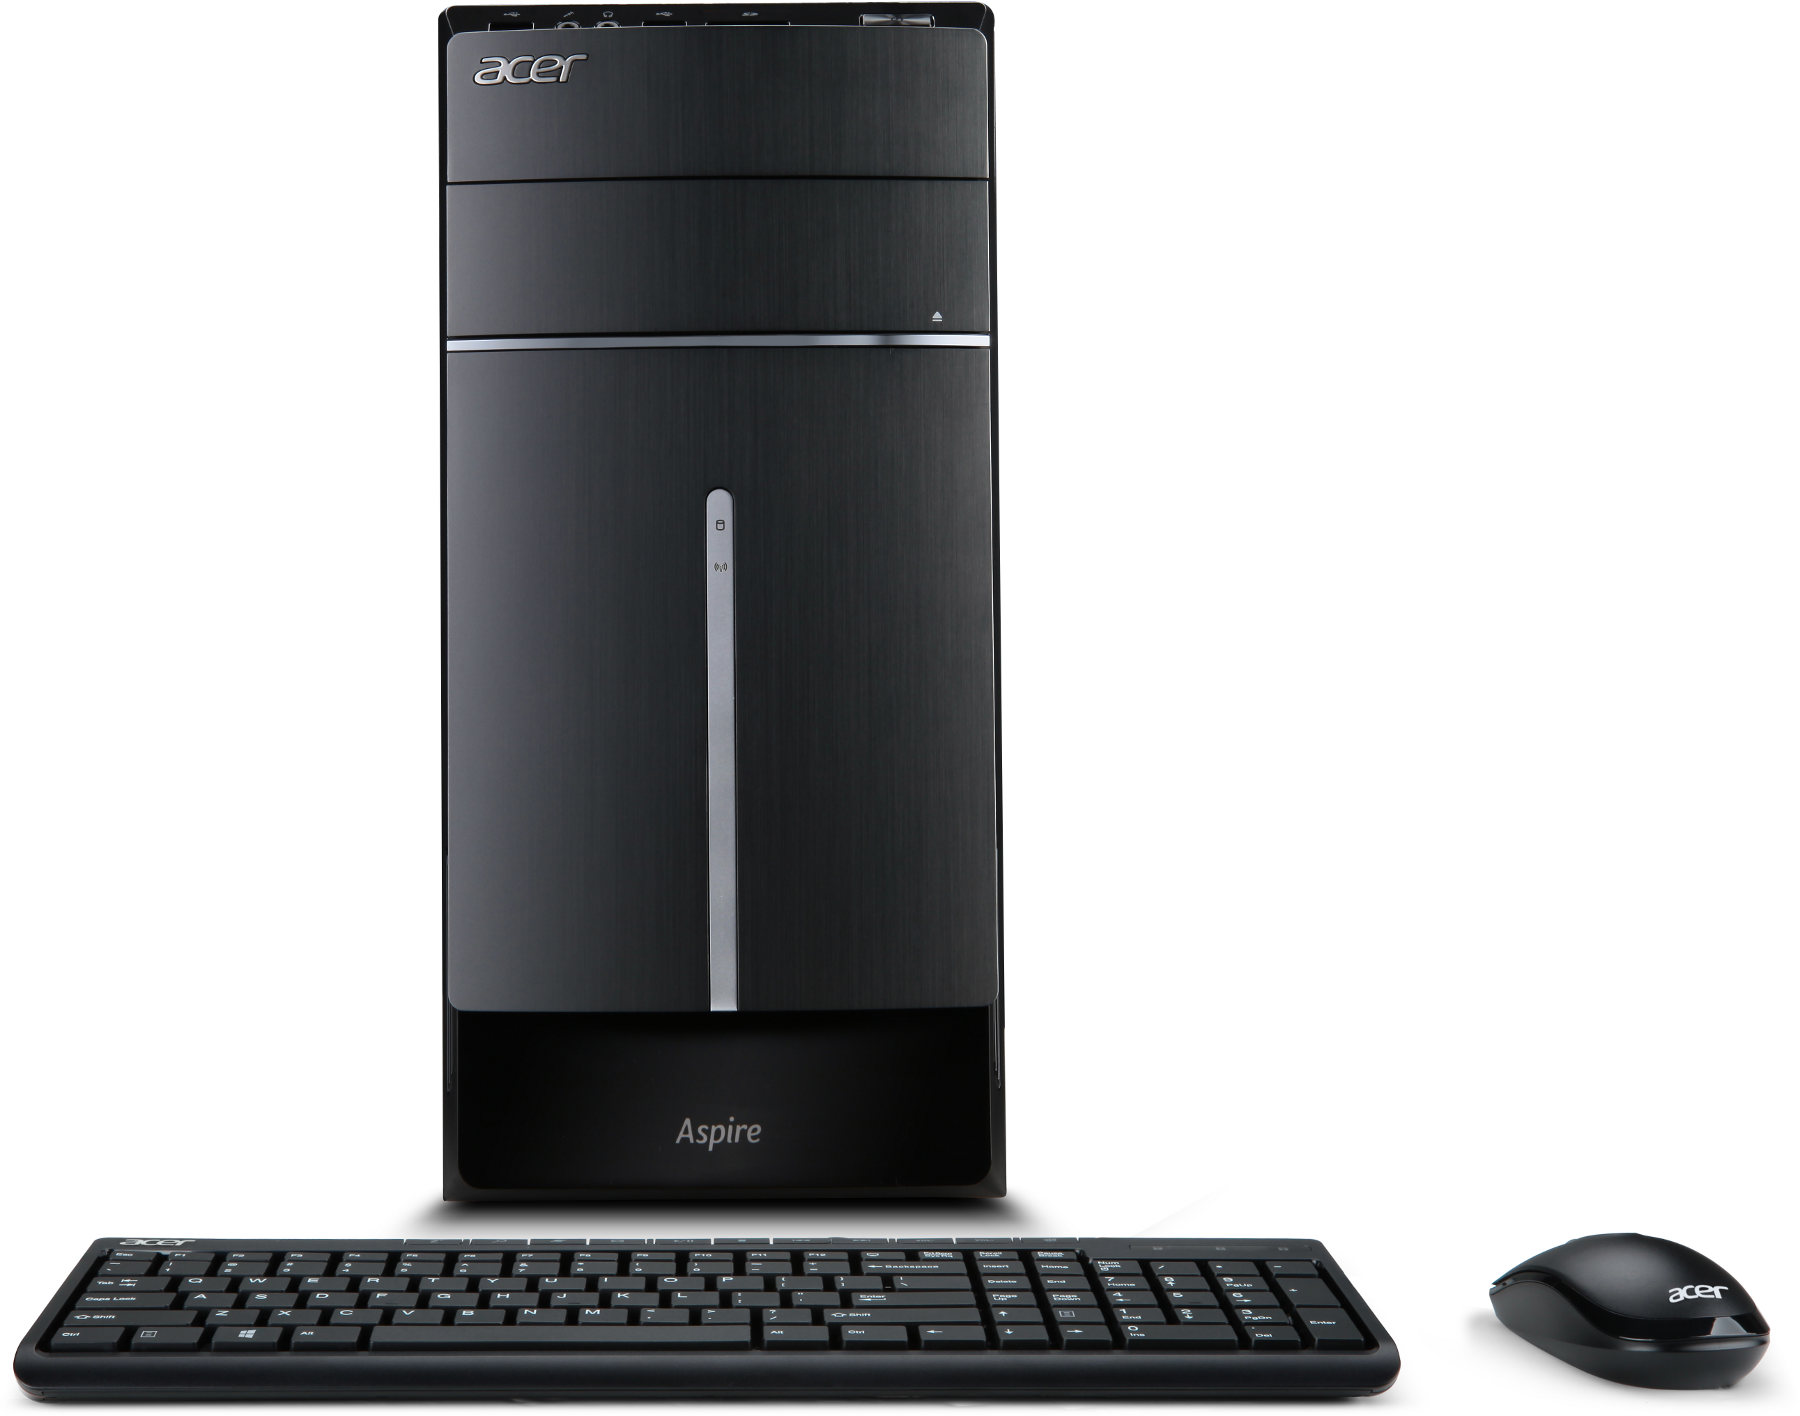 acer unite centrale aspire tc 100 007. Black Bedroom Furniture Sets. Home Design Ideas